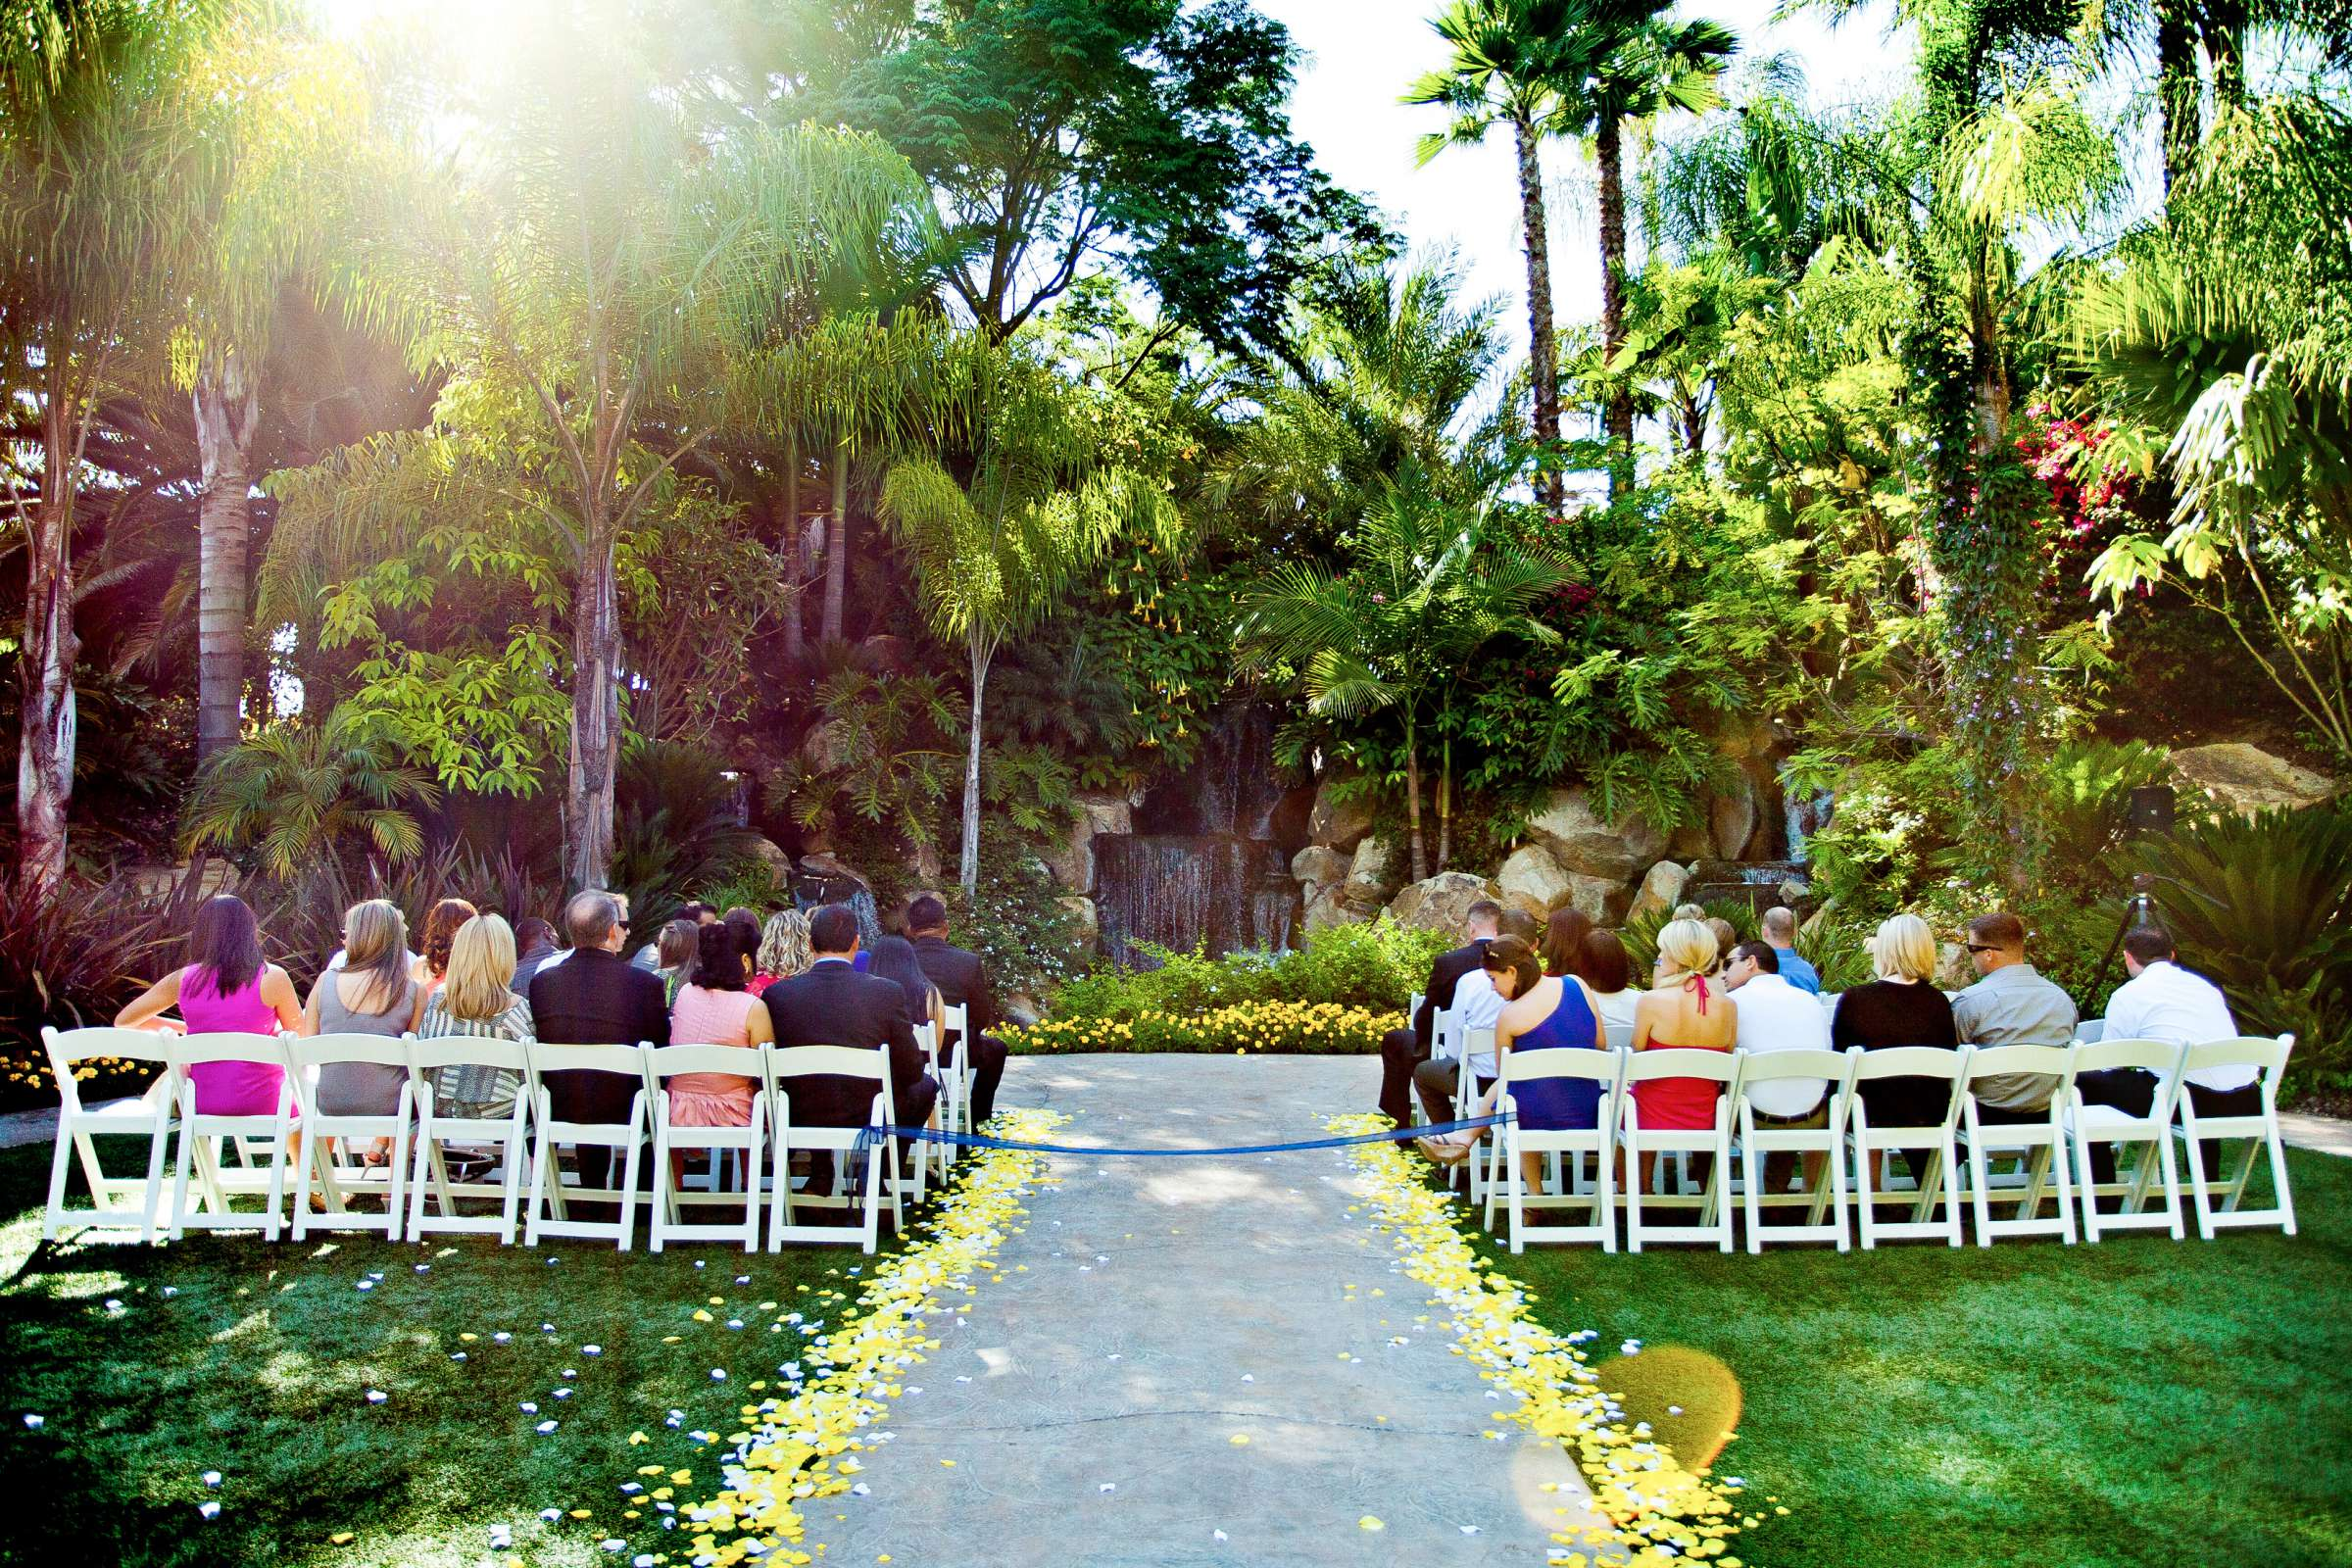 Grand Tradition Estate Wedding, Sharlene and Tony Wedding Photo #319482 by True Photography